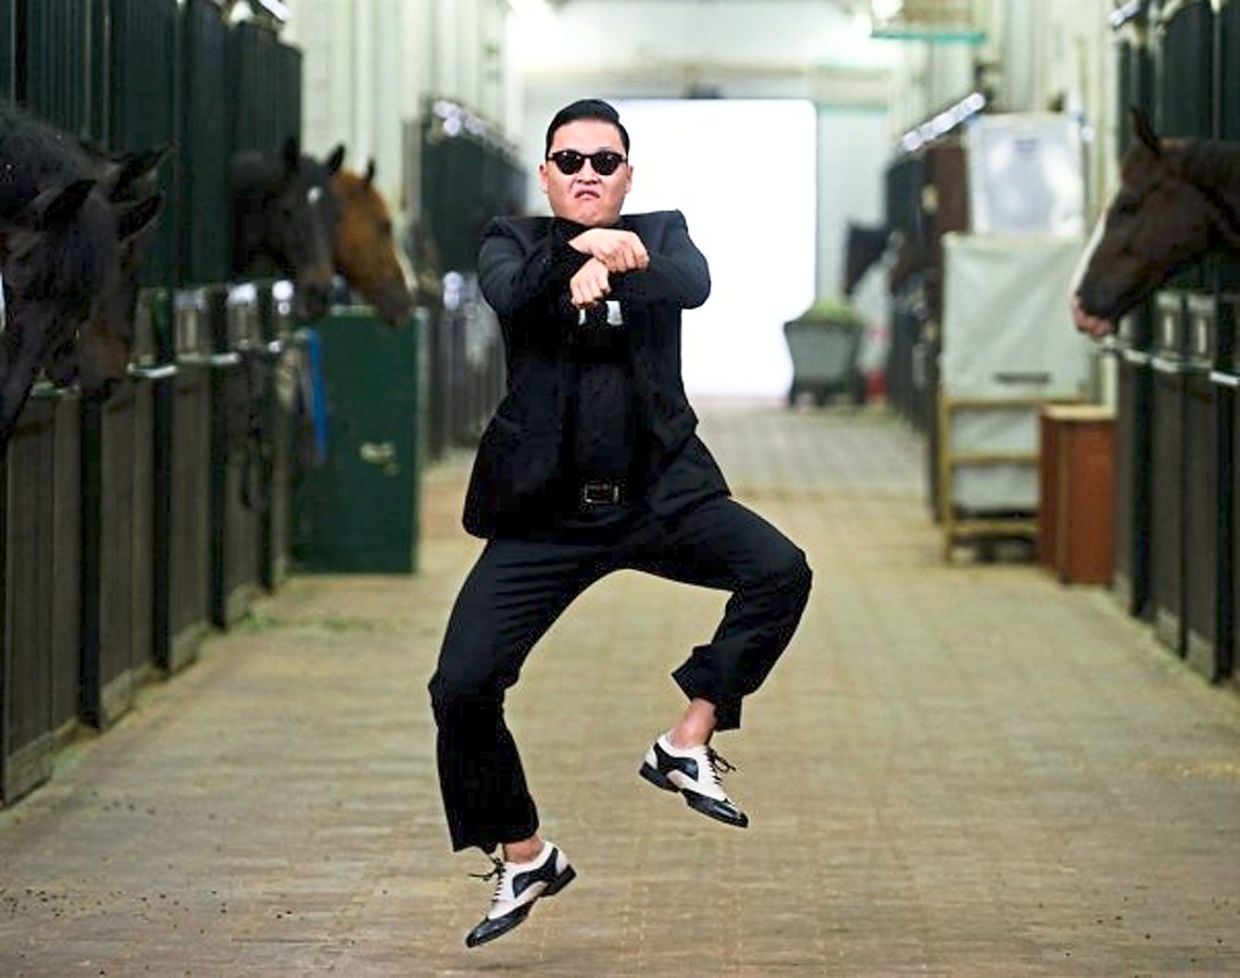 South Korean singer Psy's 'Gangnam Style' helped push K-pop culture to greater heights. Photo: Filepic